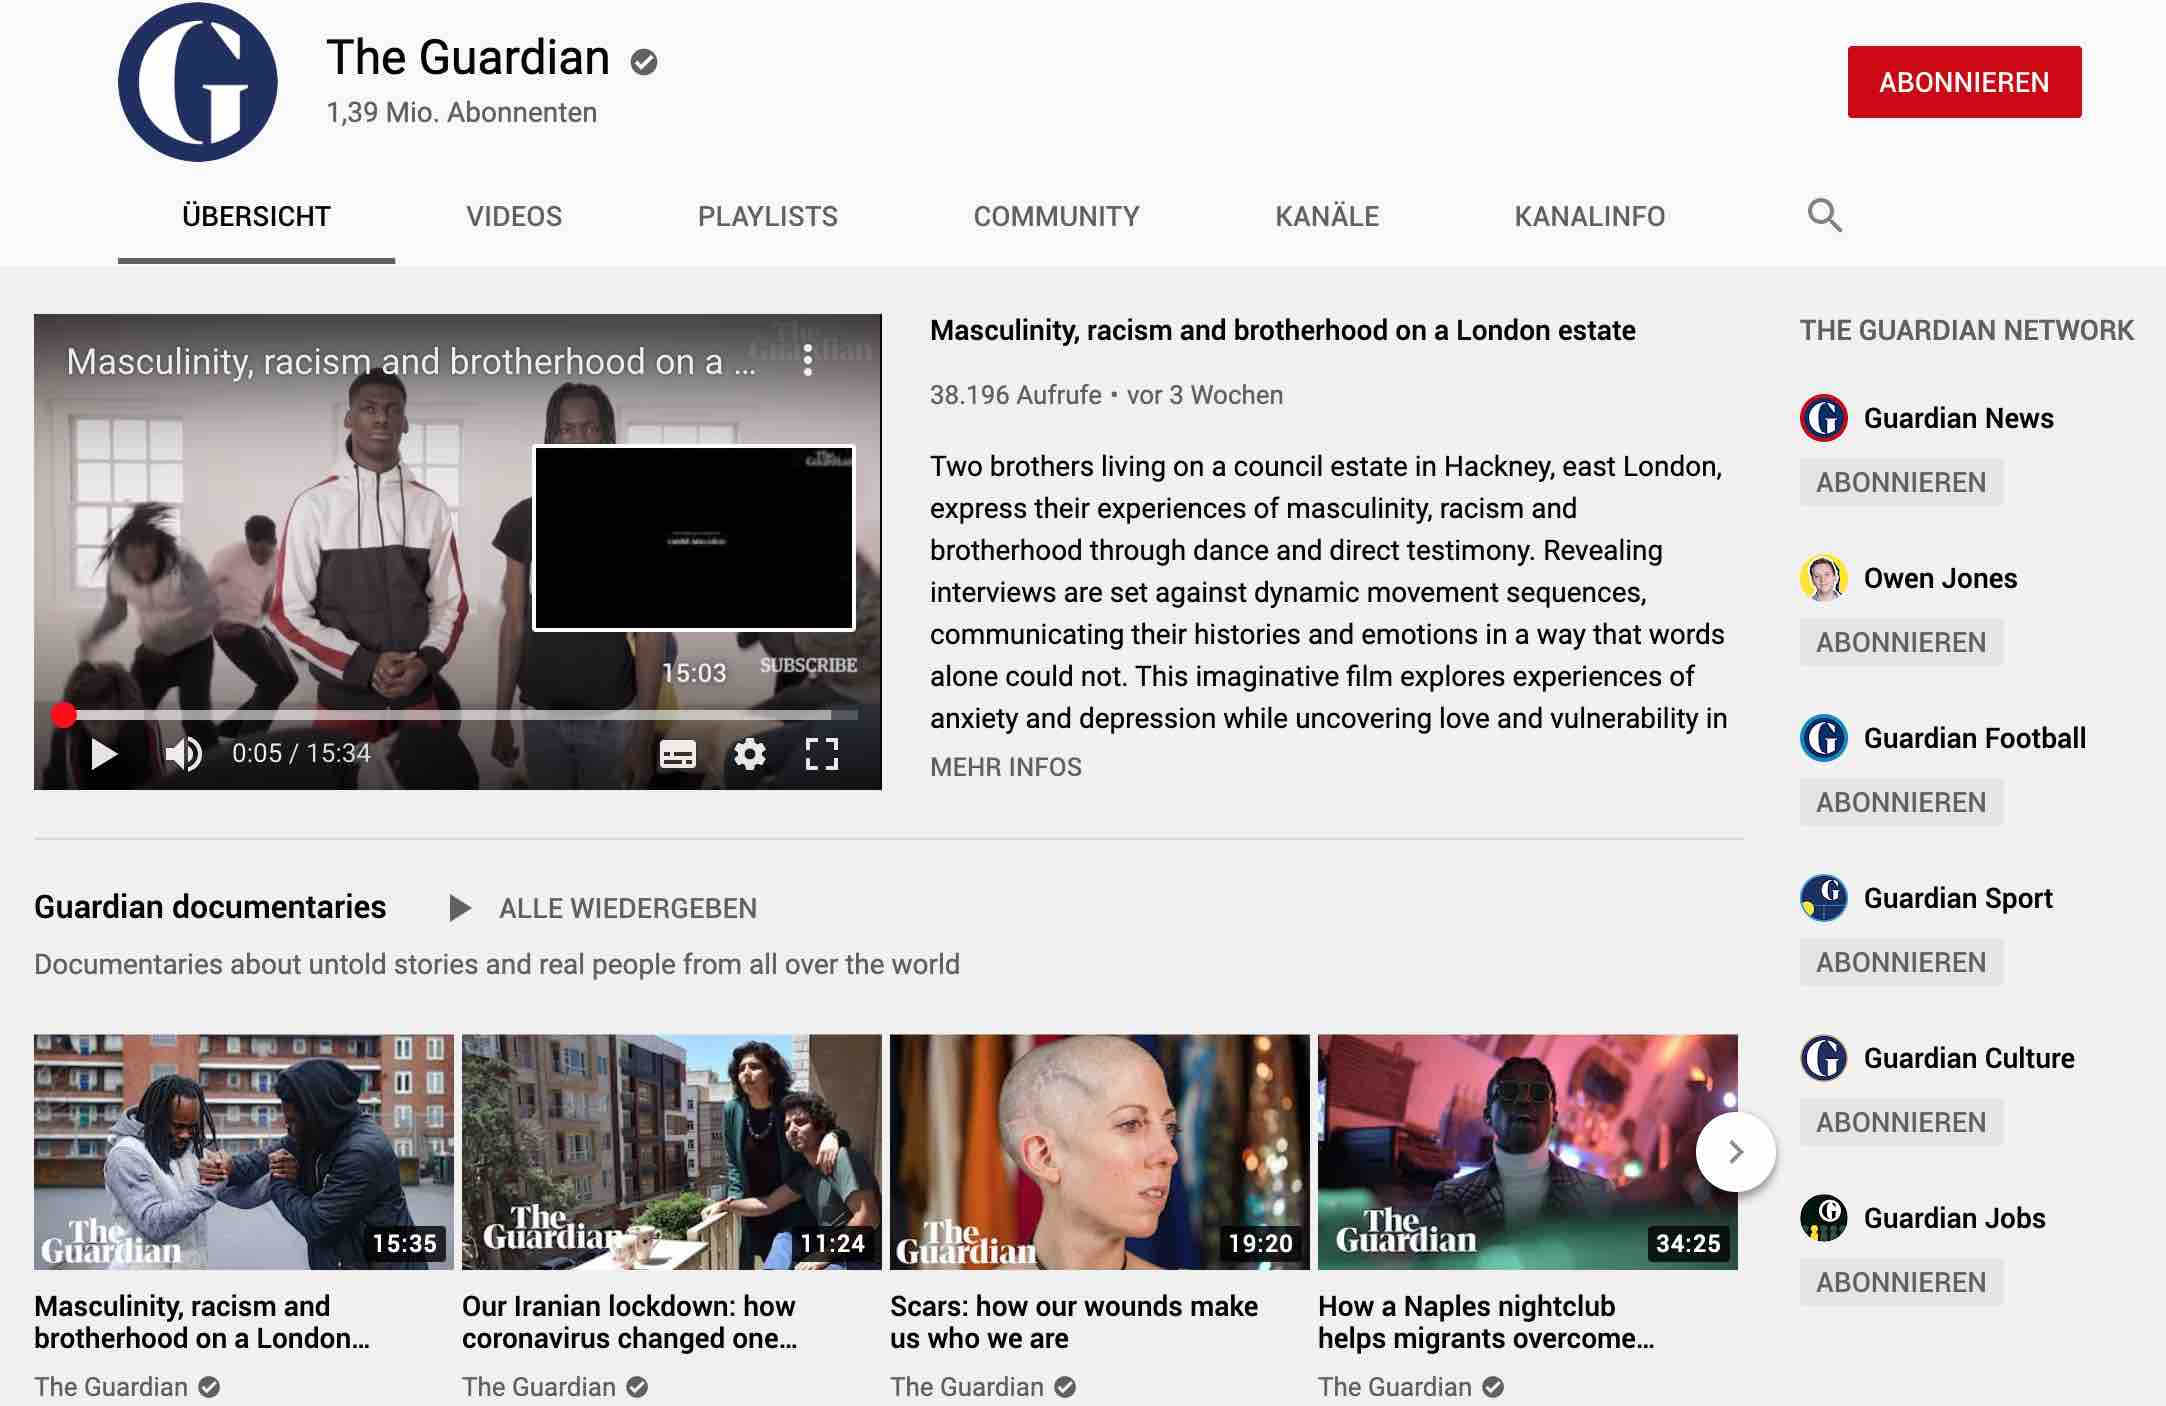 Multichannel Publishing Software for Youtube Image